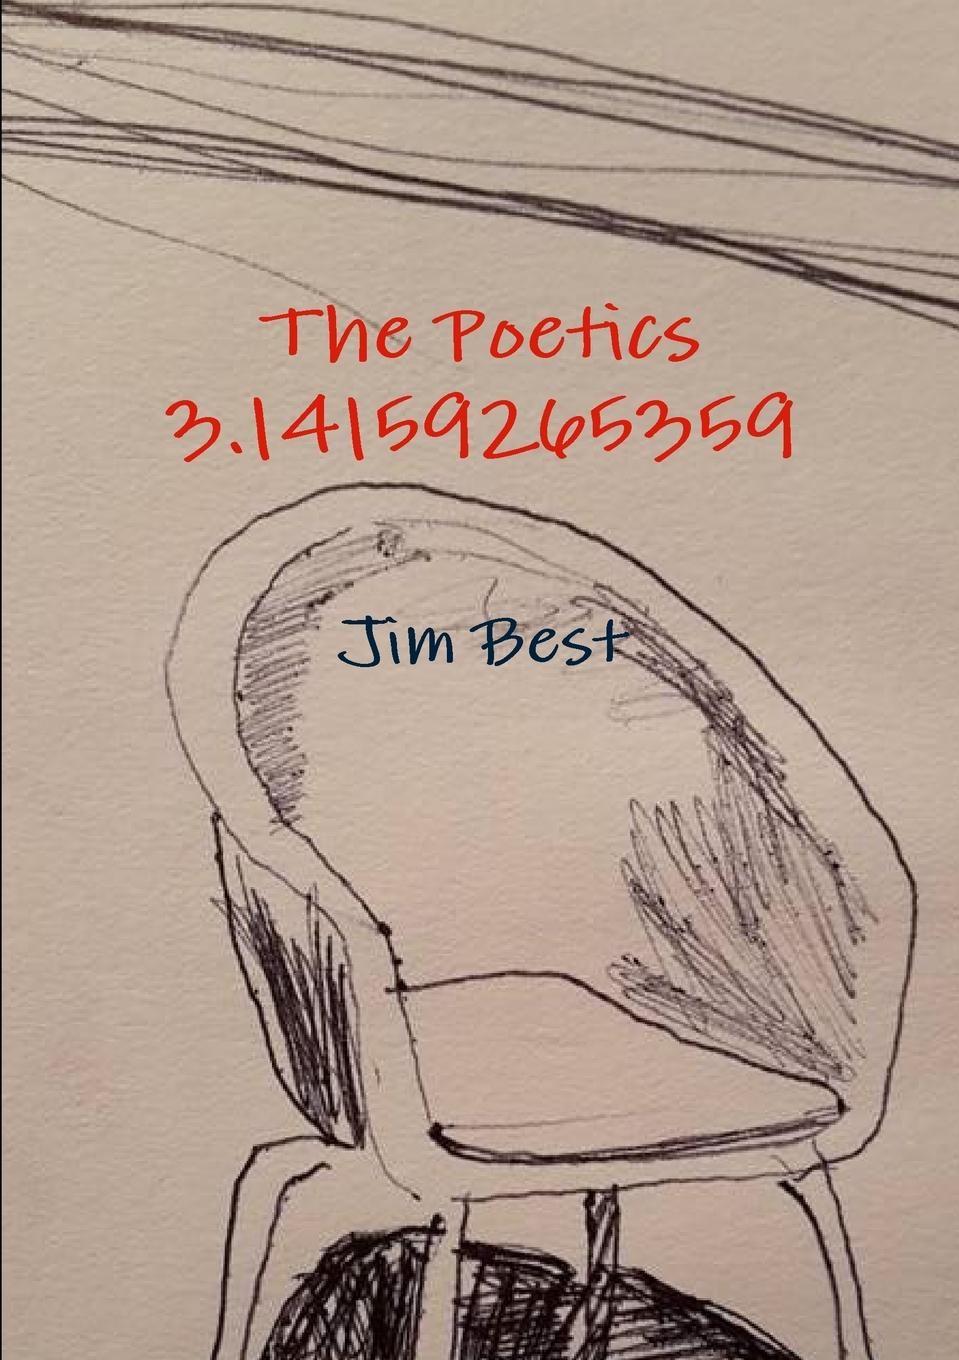 The Poetics 3.14159265359 The sixth book of mutterings and musings, covering general anger...